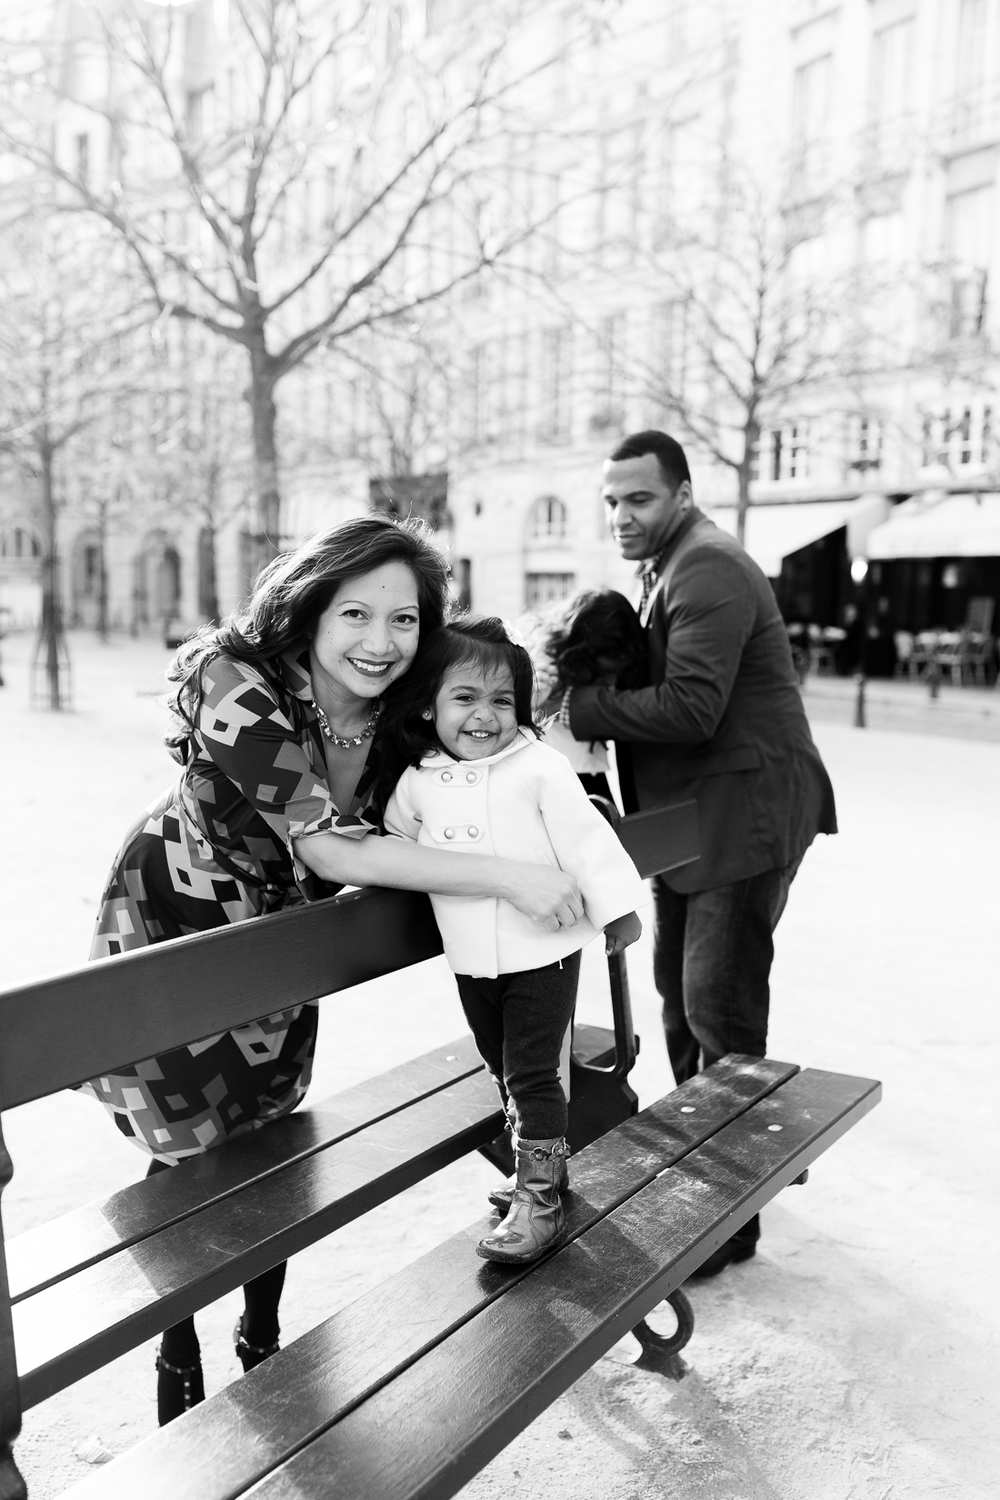 spring-fall-family-paris-eiffel-tower-photo-session-outfit-inspiratn-25